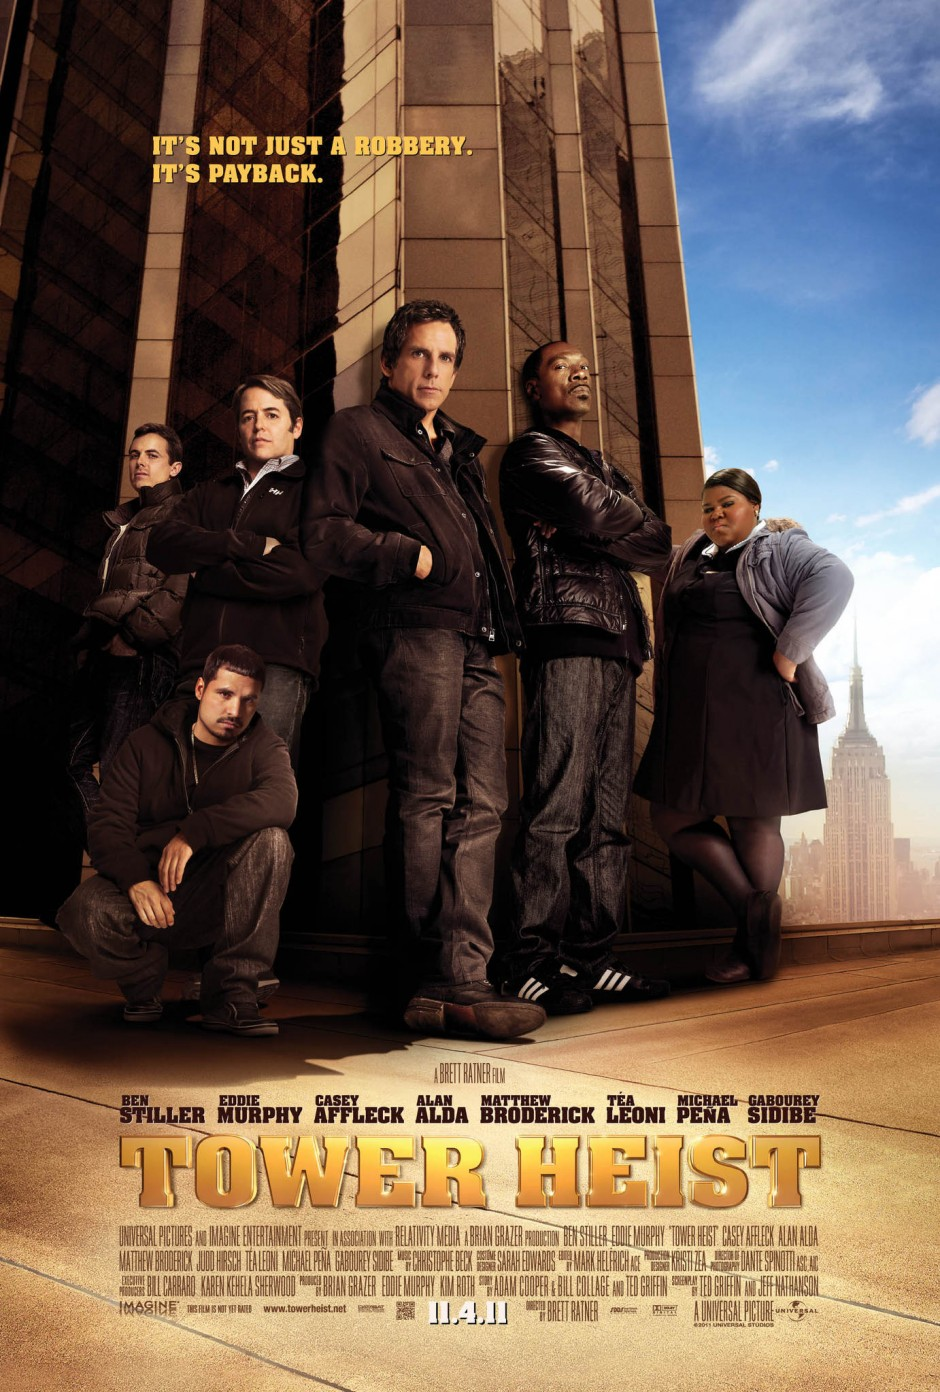 Tower Heist (2011) Poster